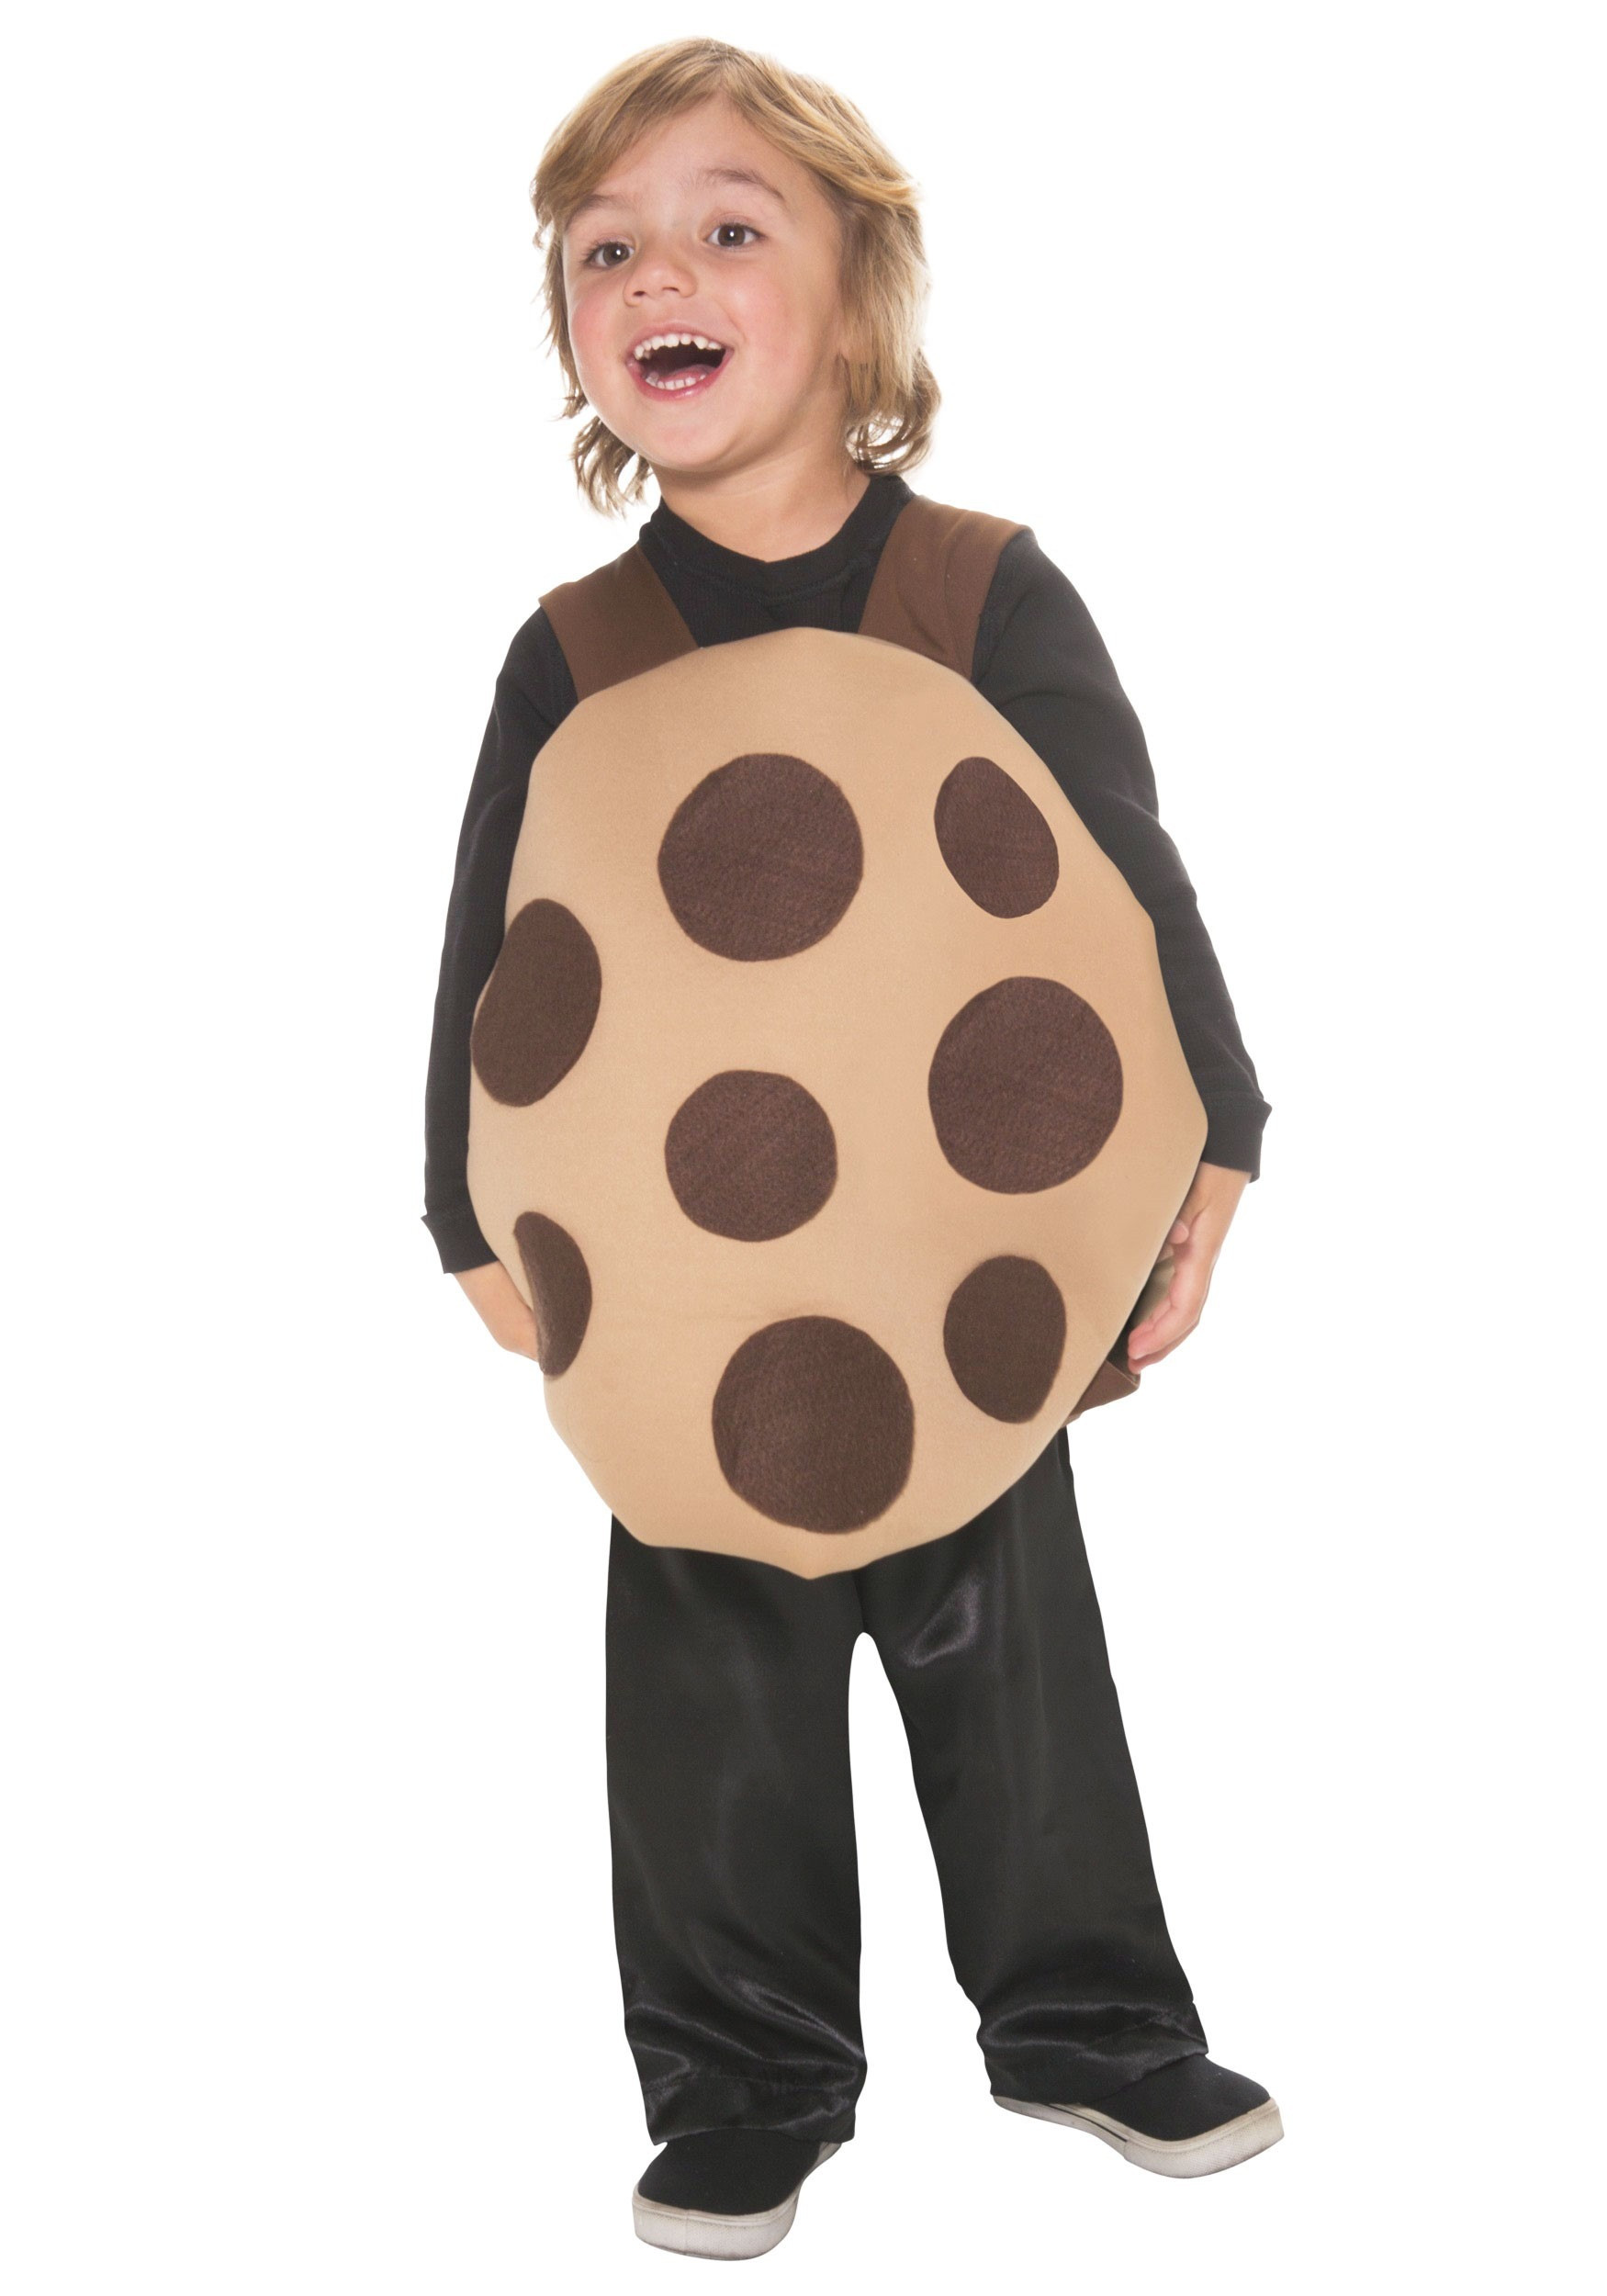 Cookies Halloween Costumes  Toddler Chocolate Chip Cookie Costume